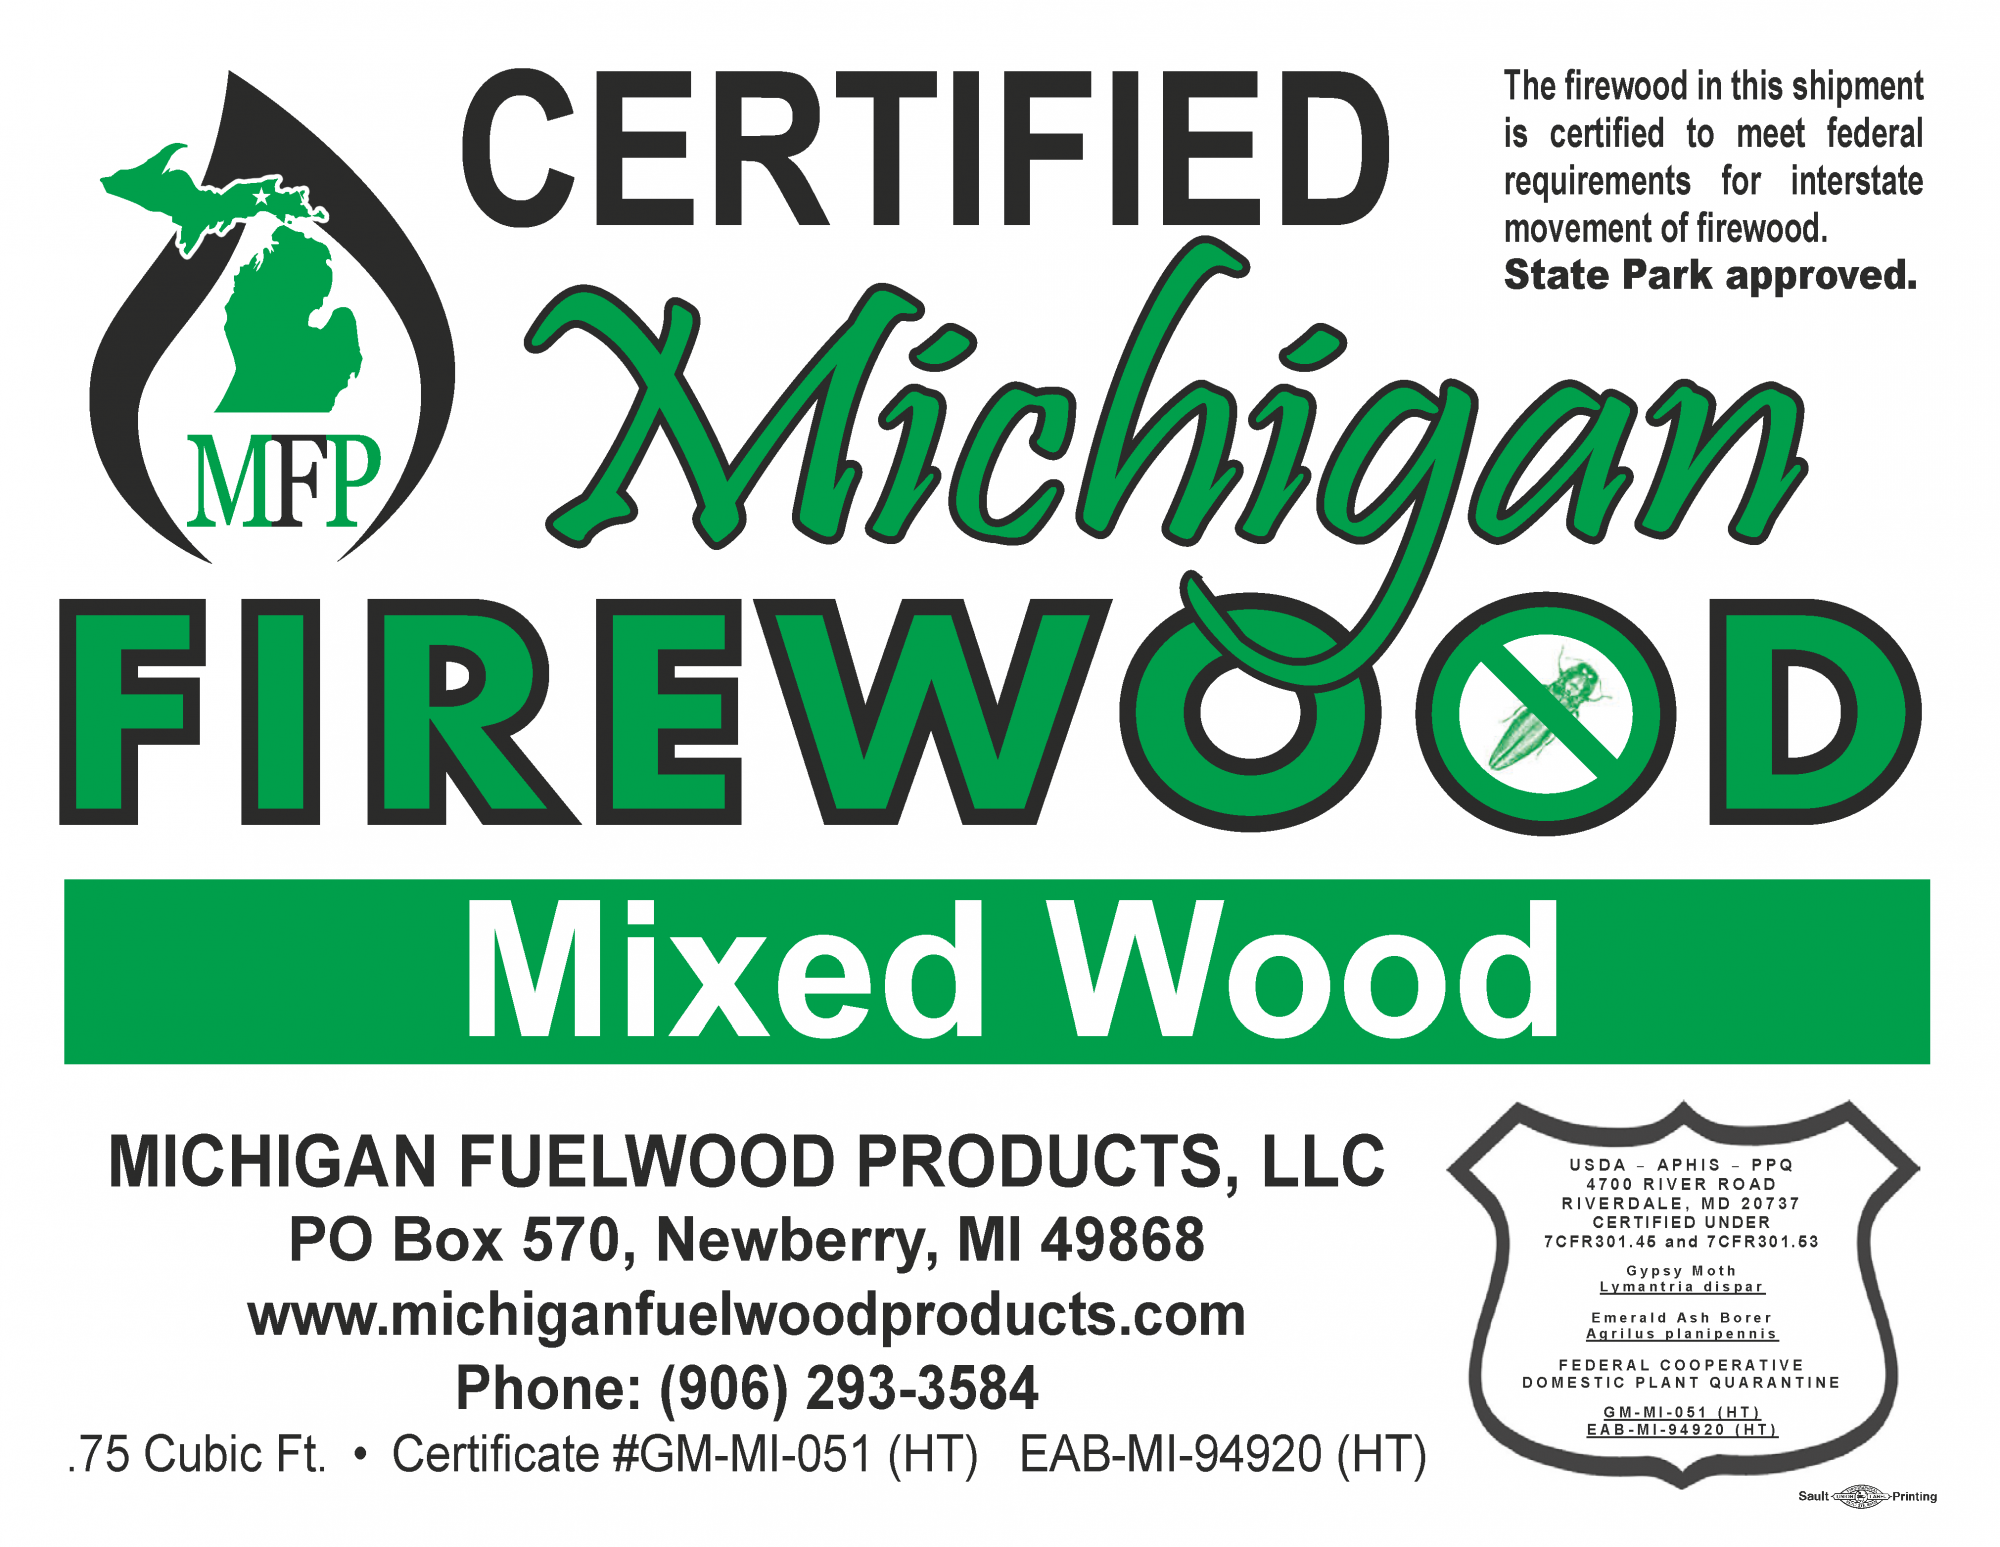 Michigan Fuelwood Products Mixed Wood firewood bundle label .75 cubic foot